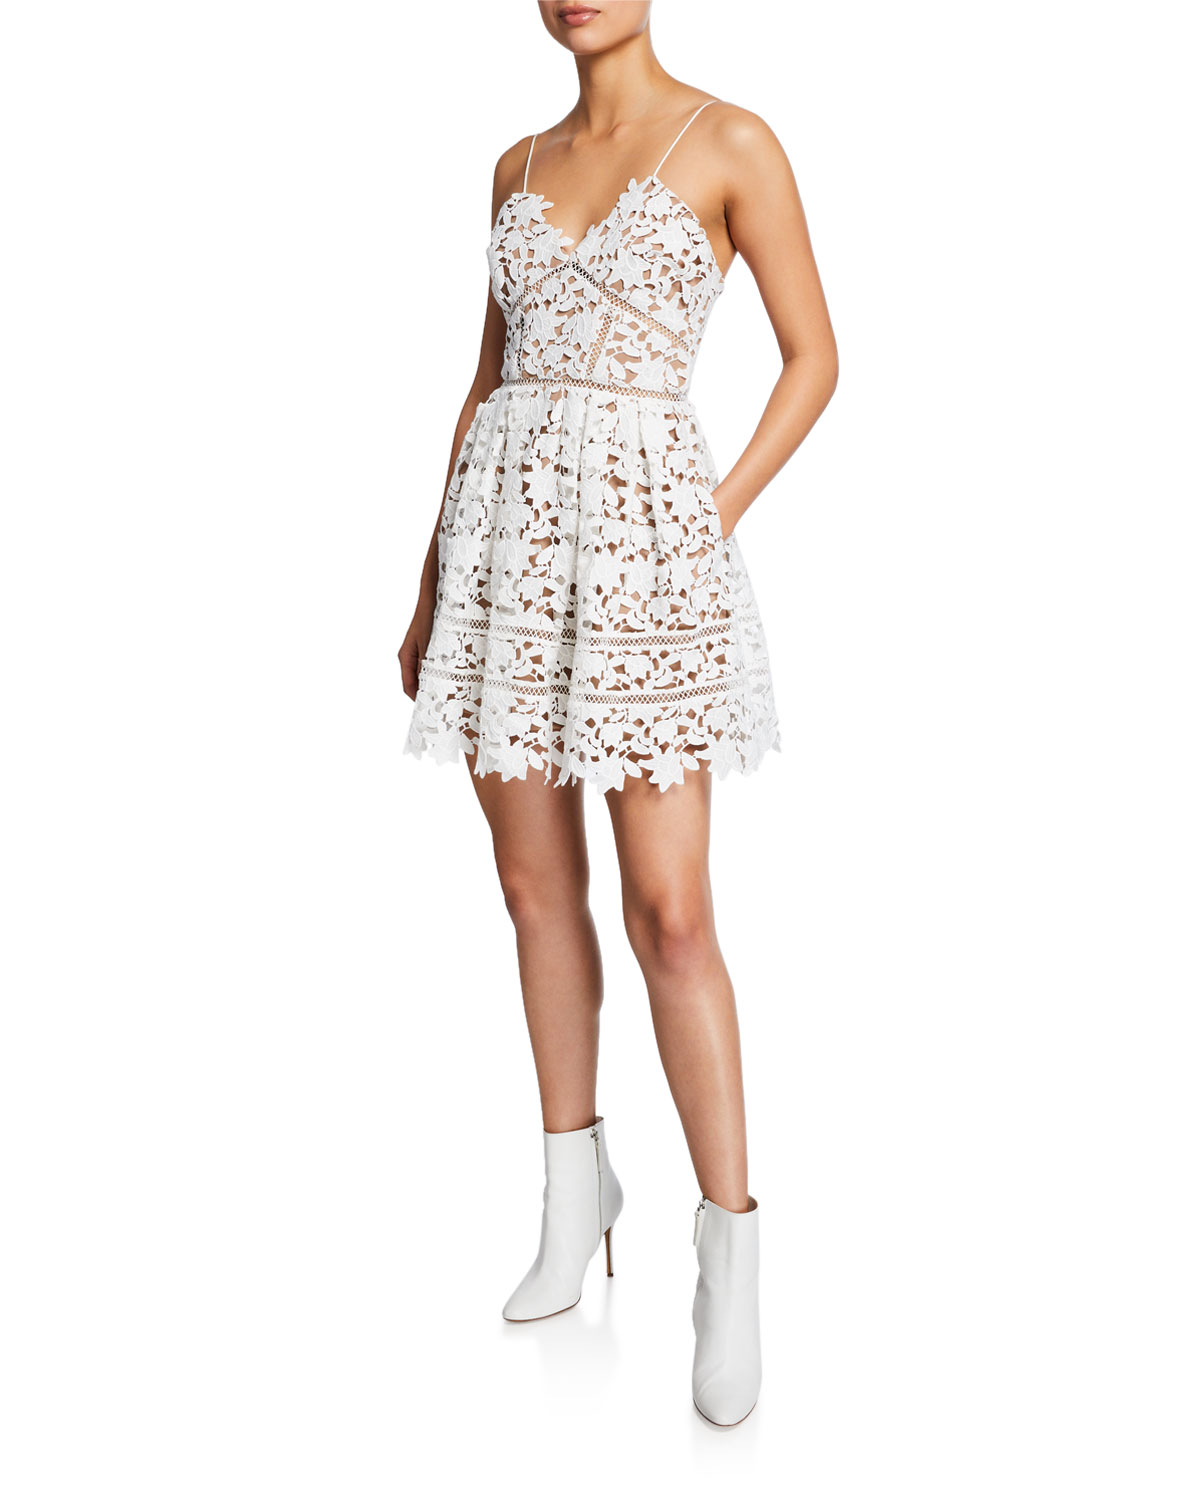 440c7dd901d3 Self-Portrait Azaelea Floral Lace Sleeveless Mini Dress | Neiman Marcus